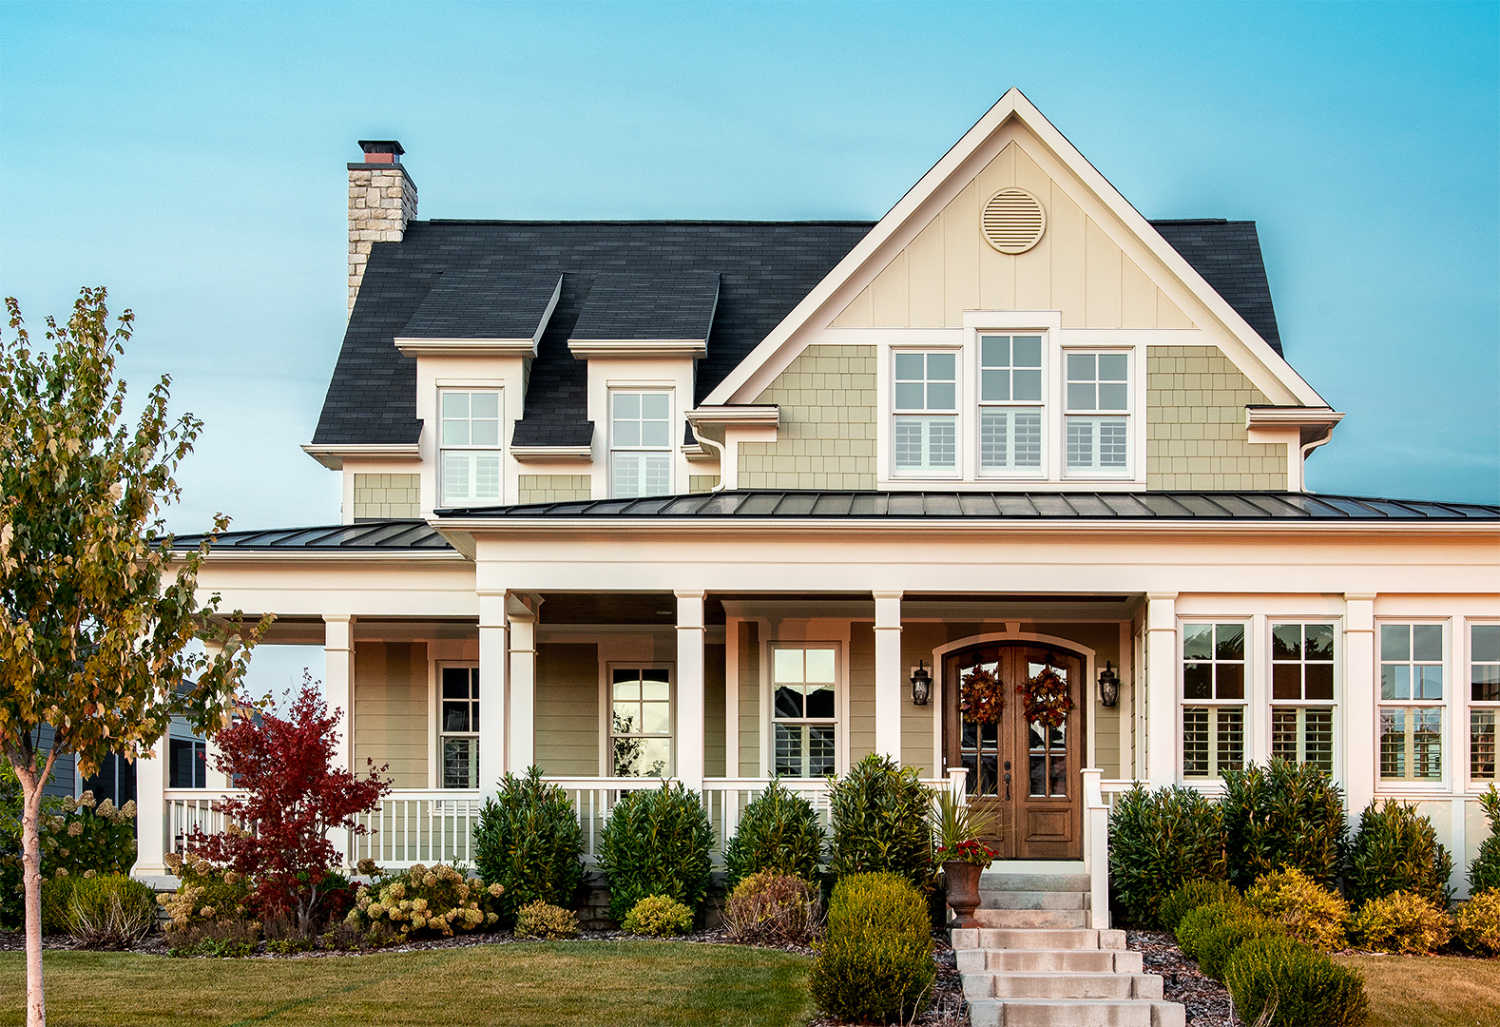 The 5 Most Popular Types of House Siding